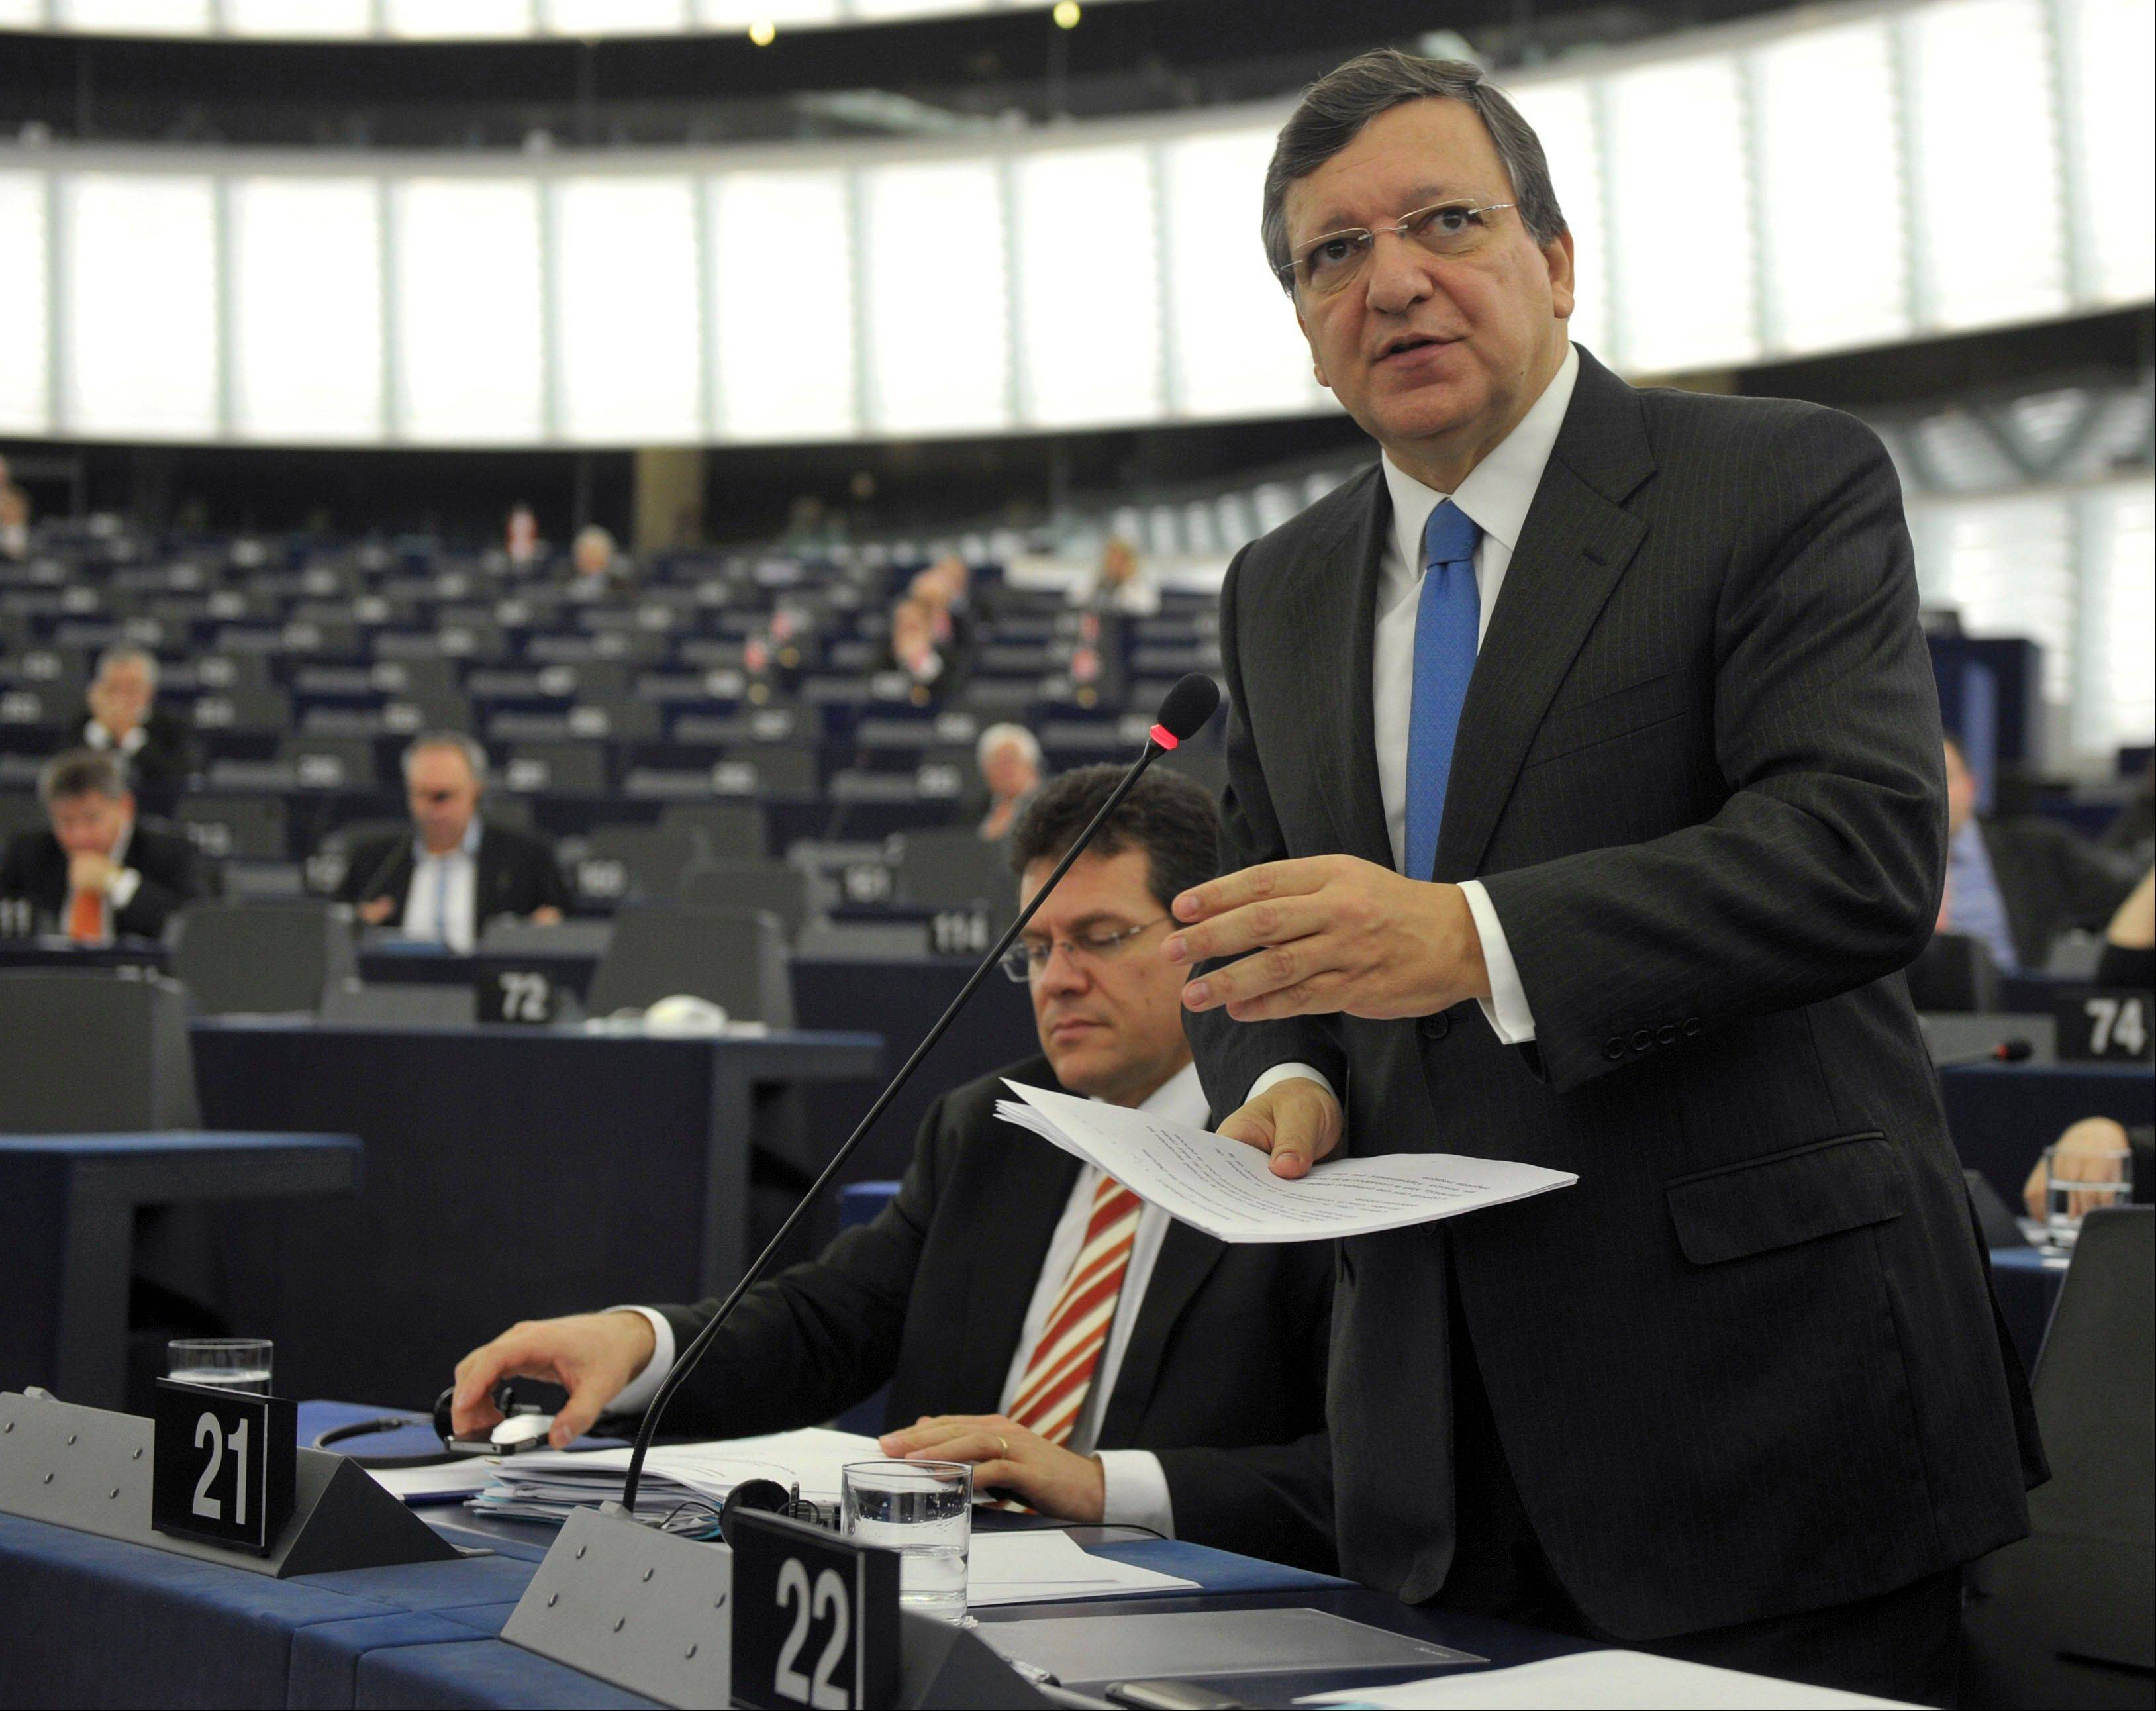 President of the European Commission Jose Manuel Barroso delivers his speech, Wednesday at the European Parliament in Strasbourg, eastern France.